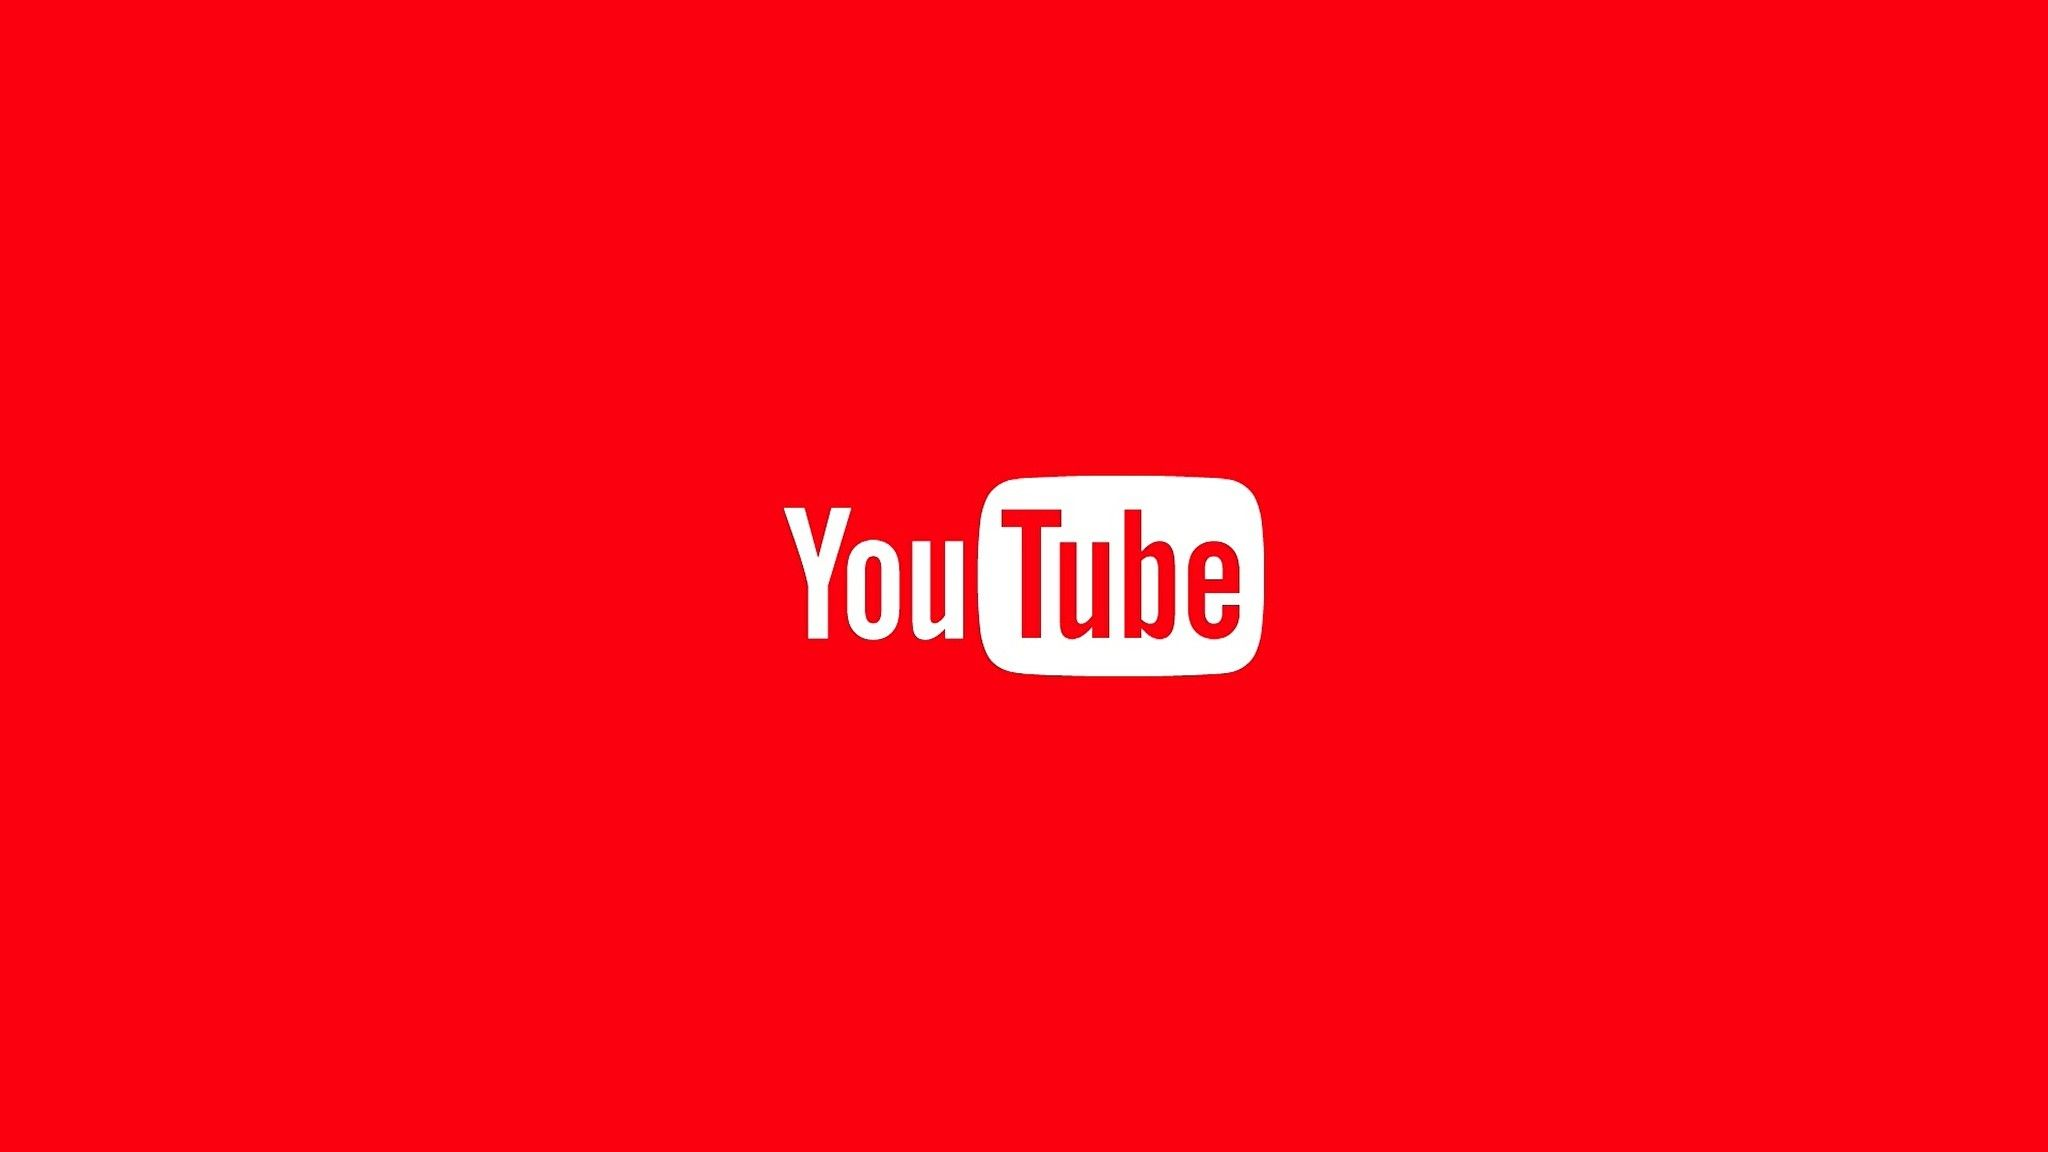 77 2048x1152 Youtube Wallpapers On Wallpaperplay Logotipo Do